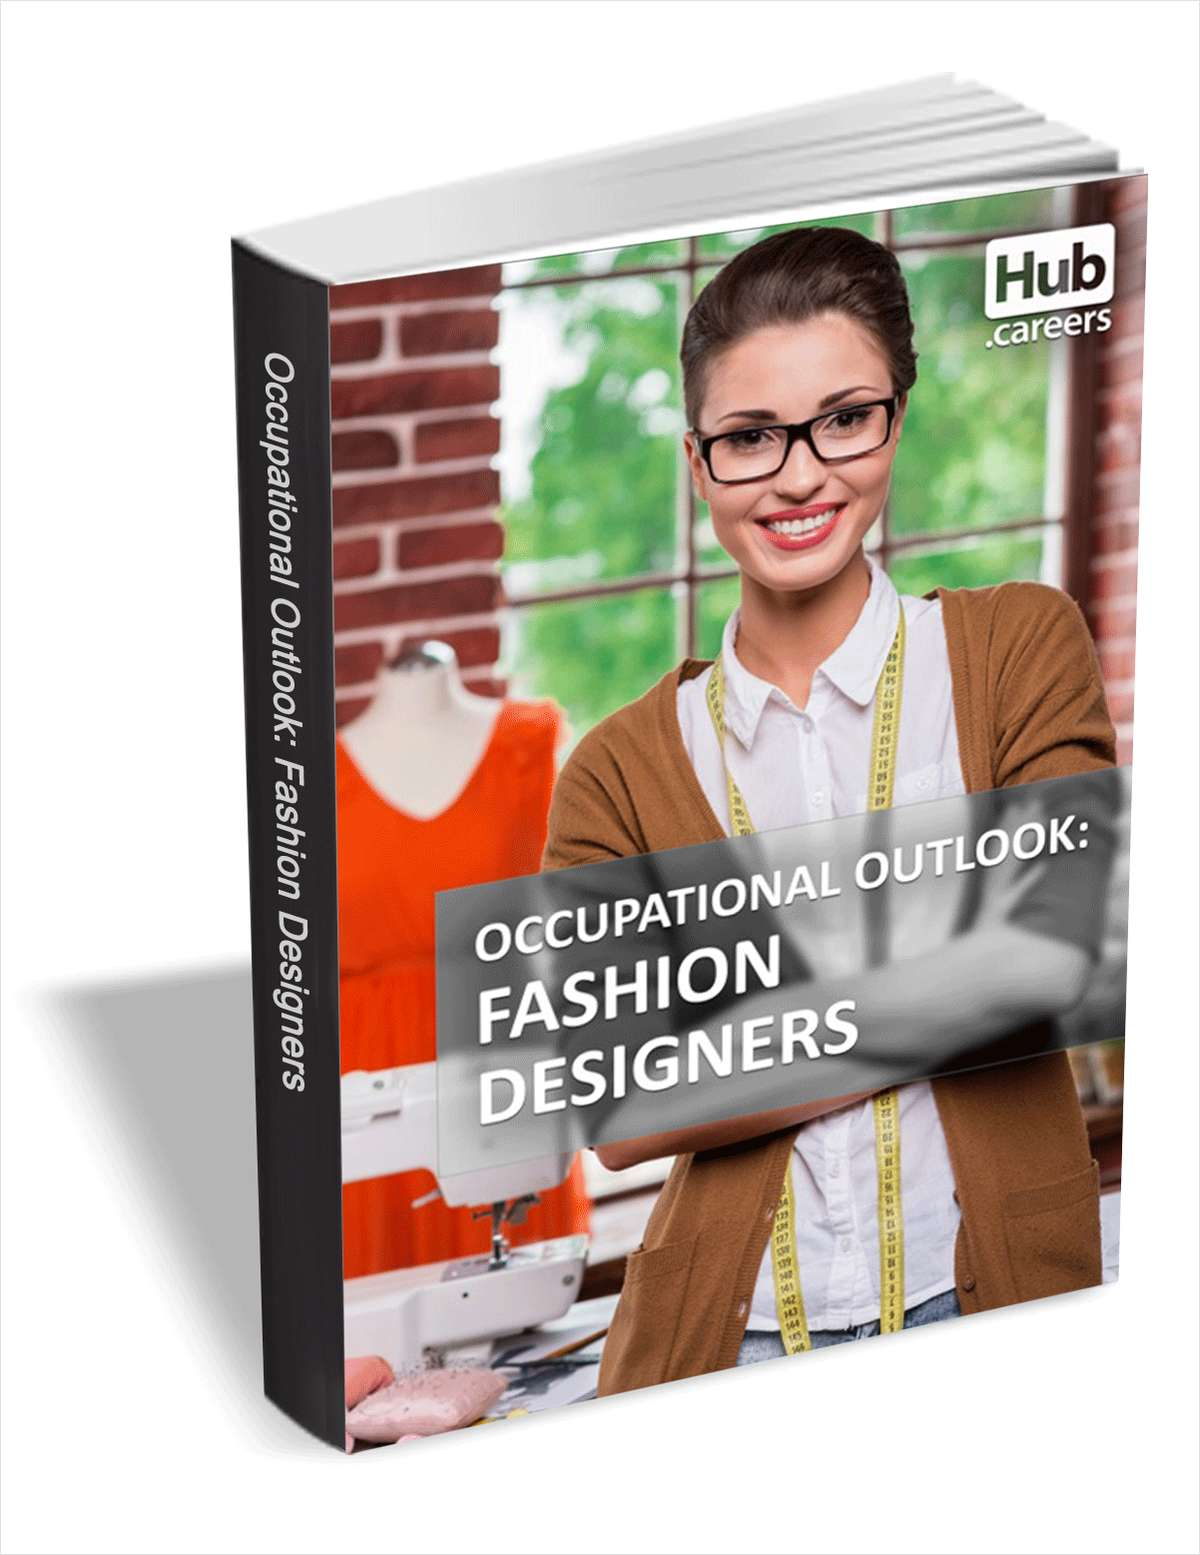 Fashion Designers - Occupational Outlook